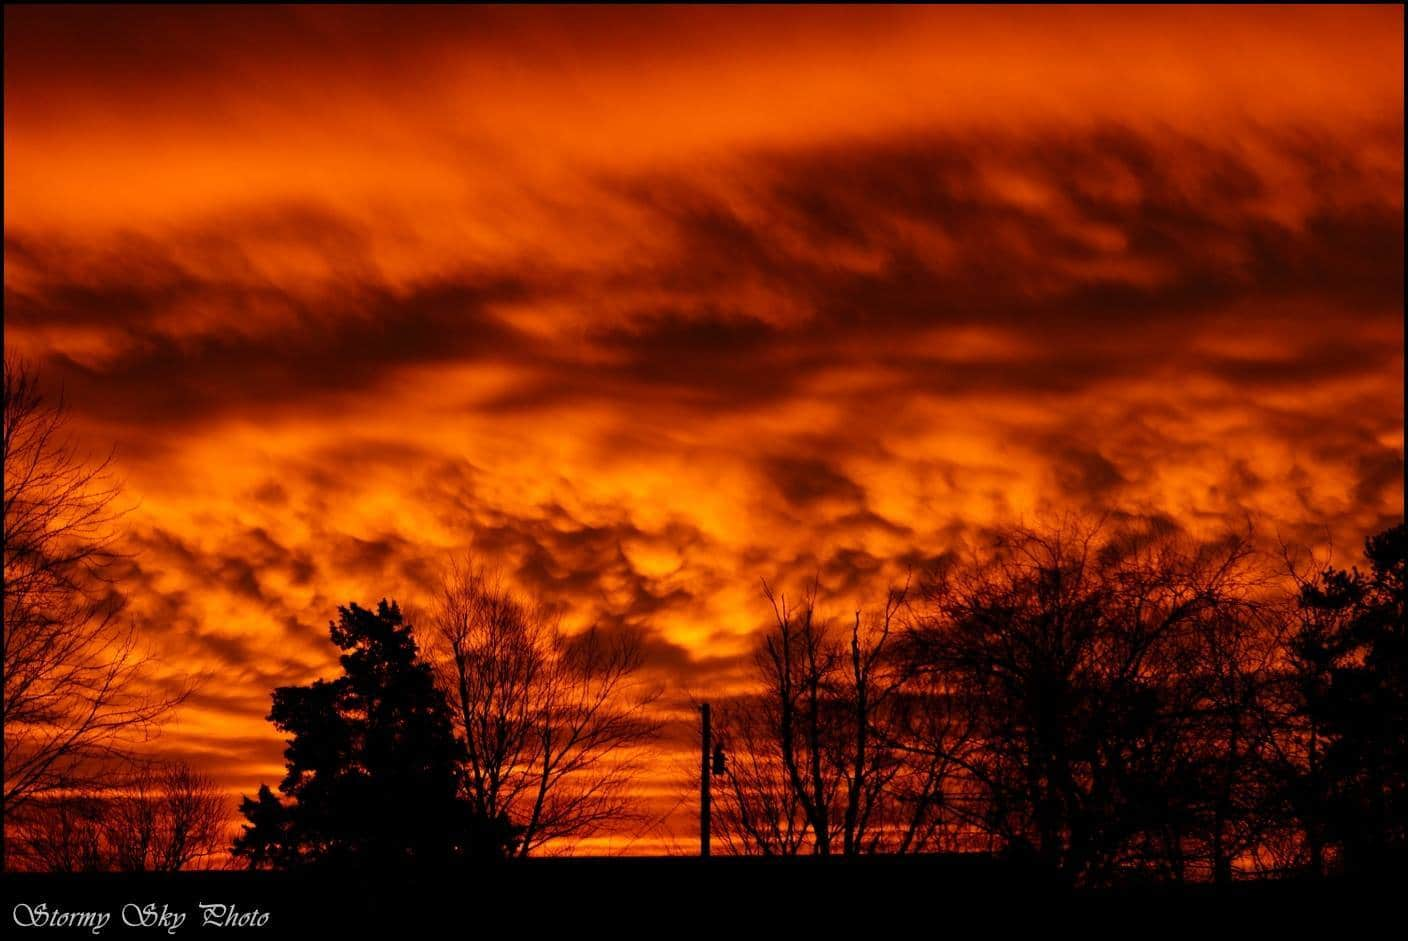 A very angry and fiery sunrise.